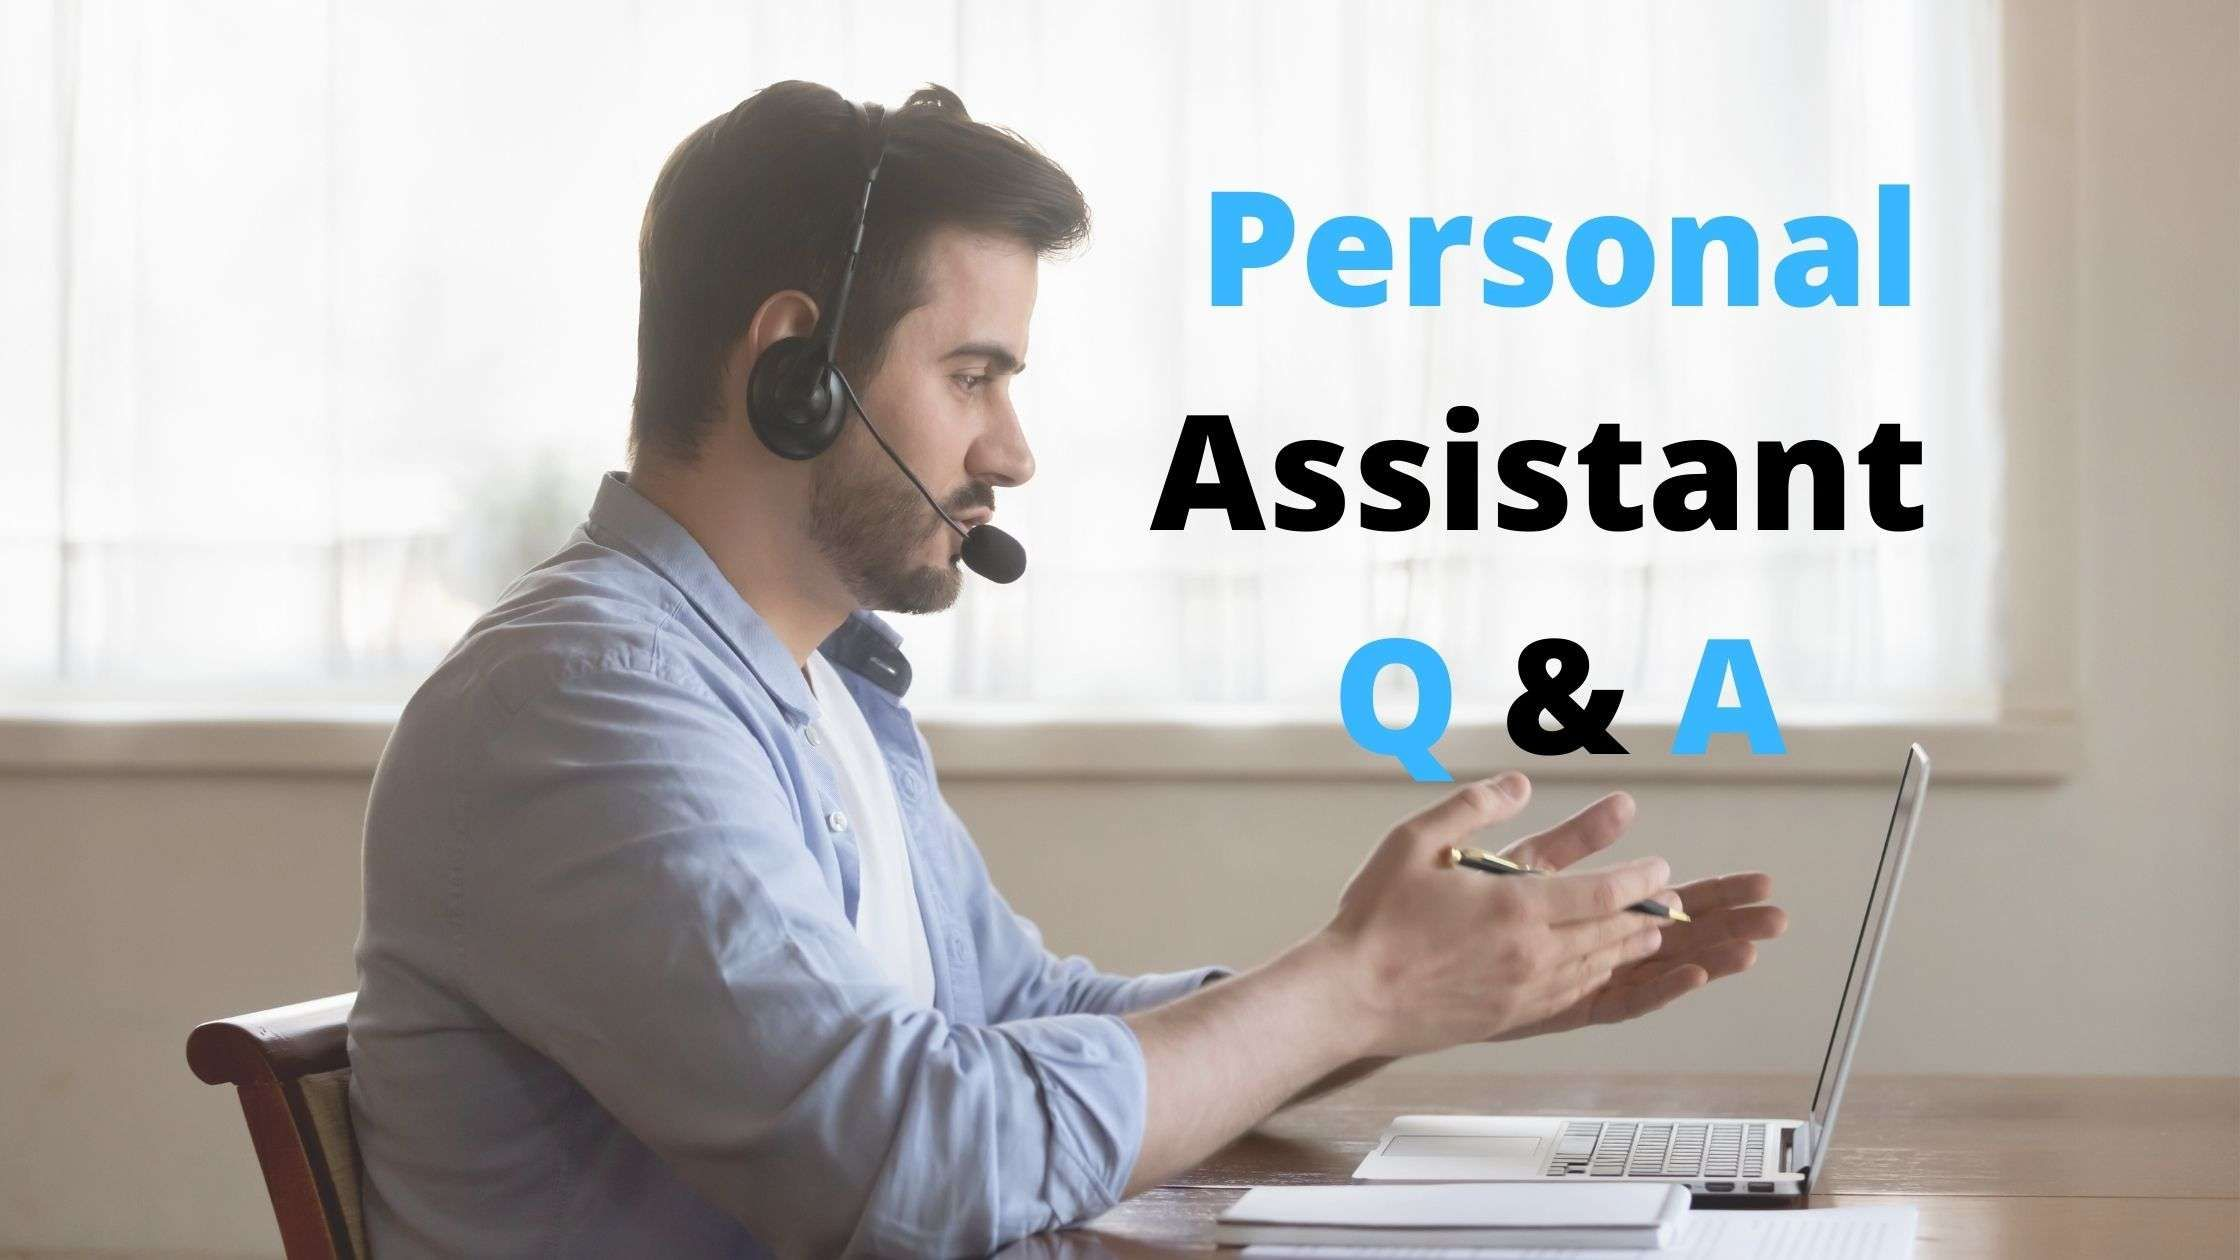 Personal Assistant Interview Questions and Answers